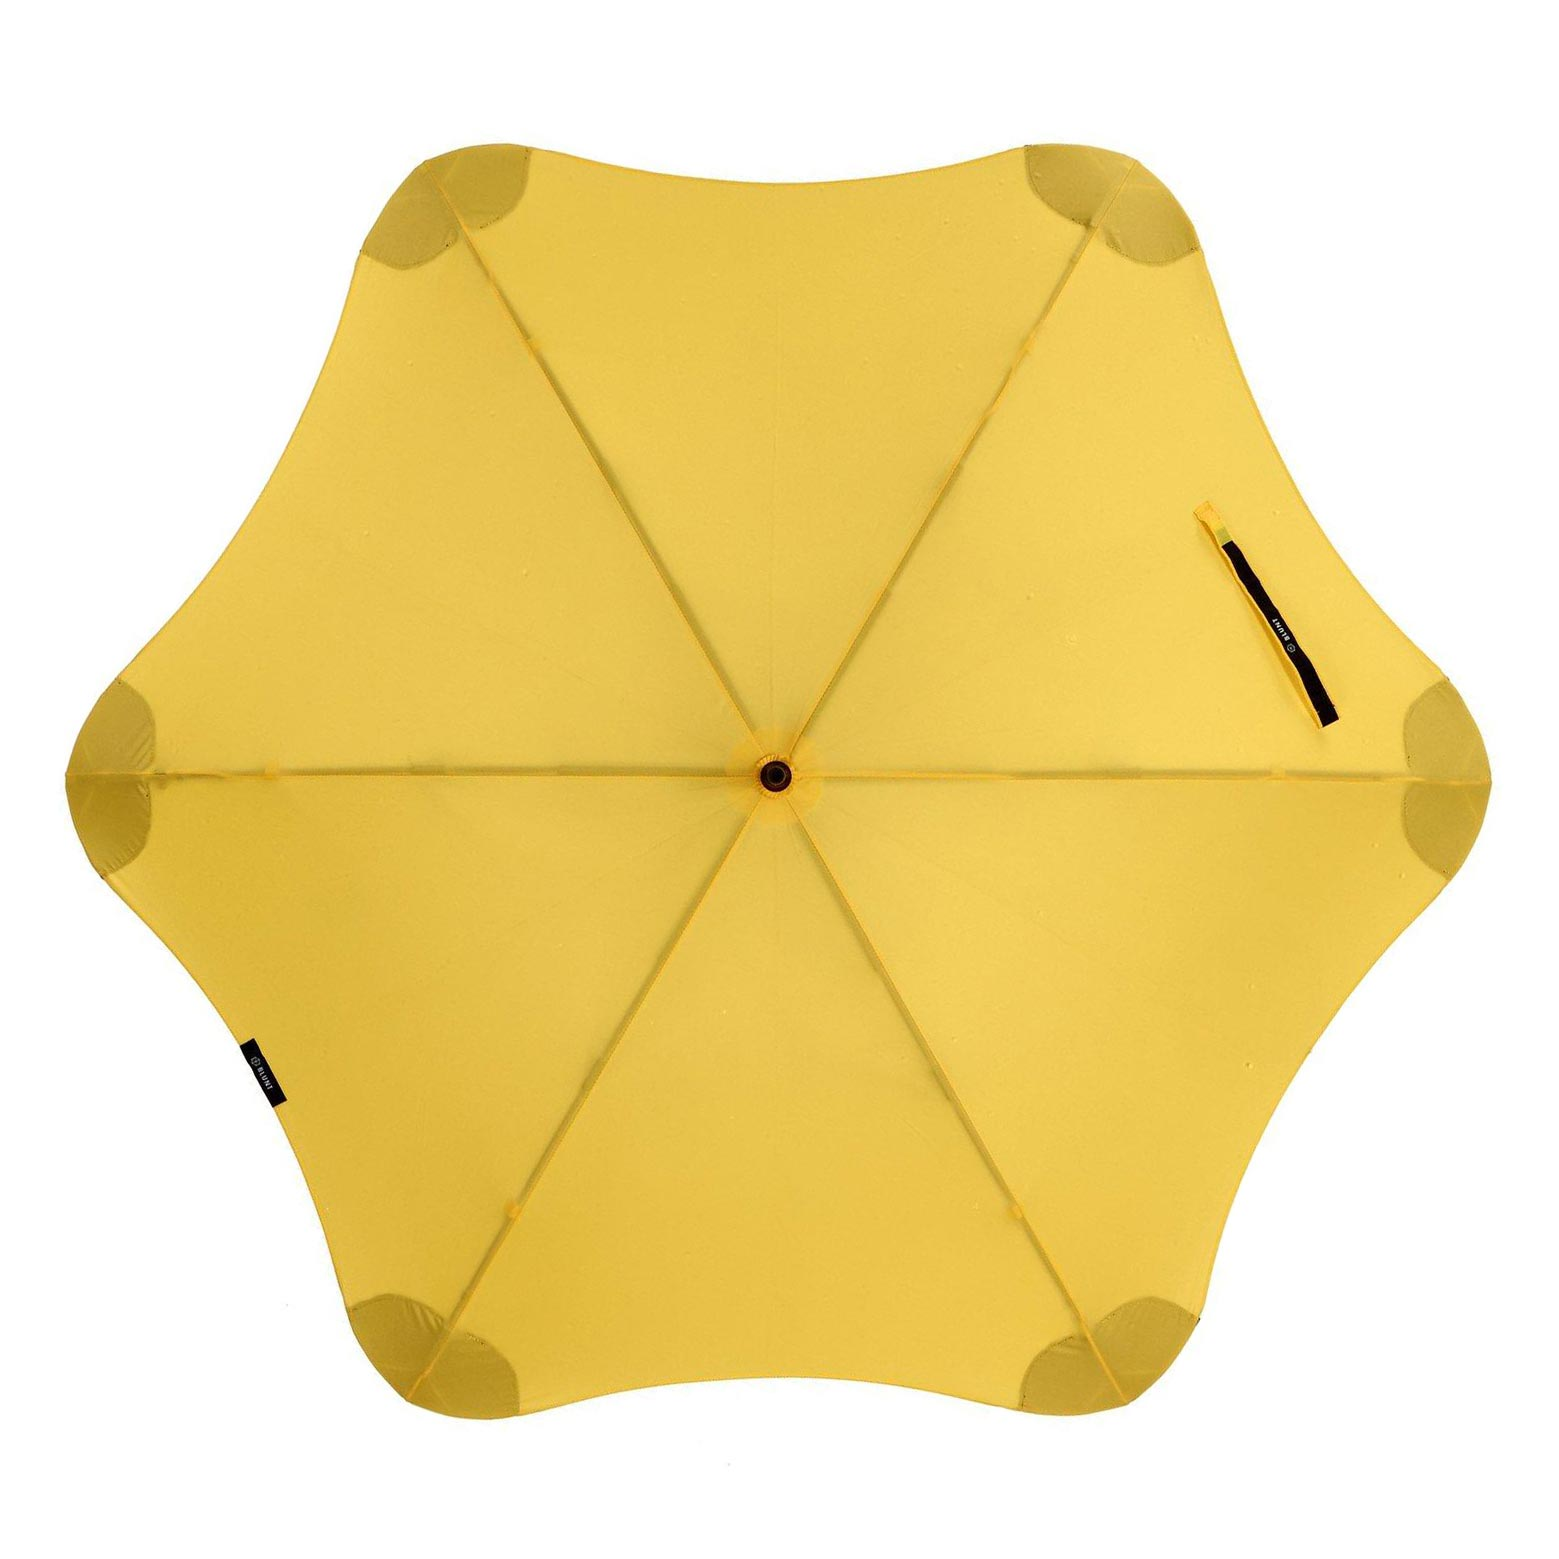 BLUNT umbrella Metro Yellow | the design gift shop